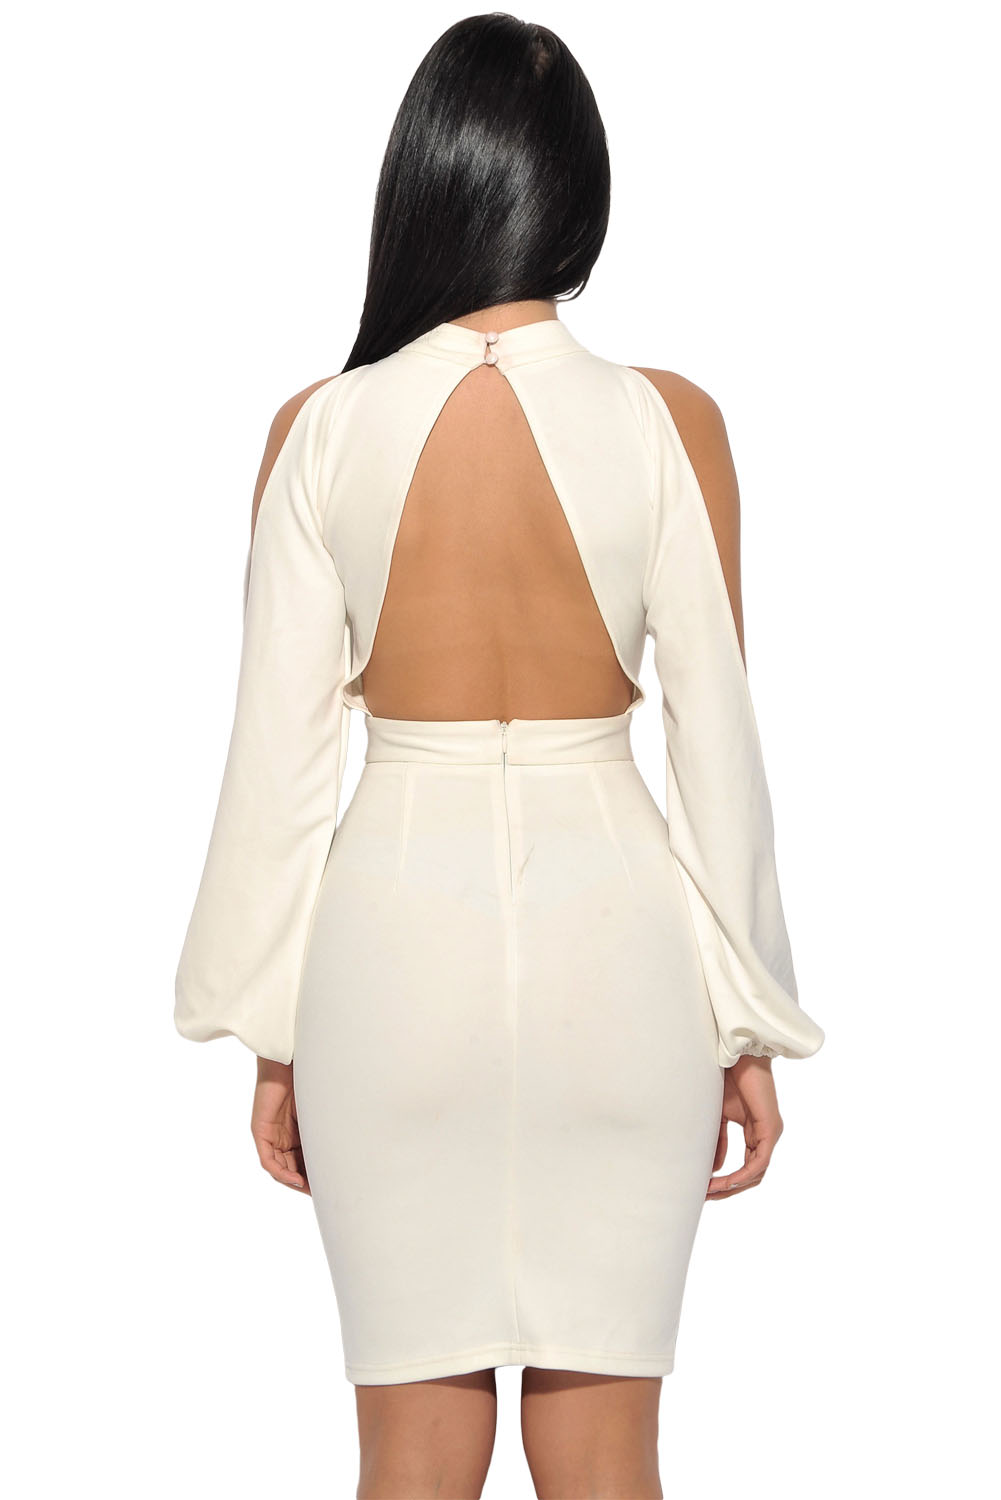 BY28466-1 White Cut Out Sleeve Stretch Crepe Bandage Party Dress